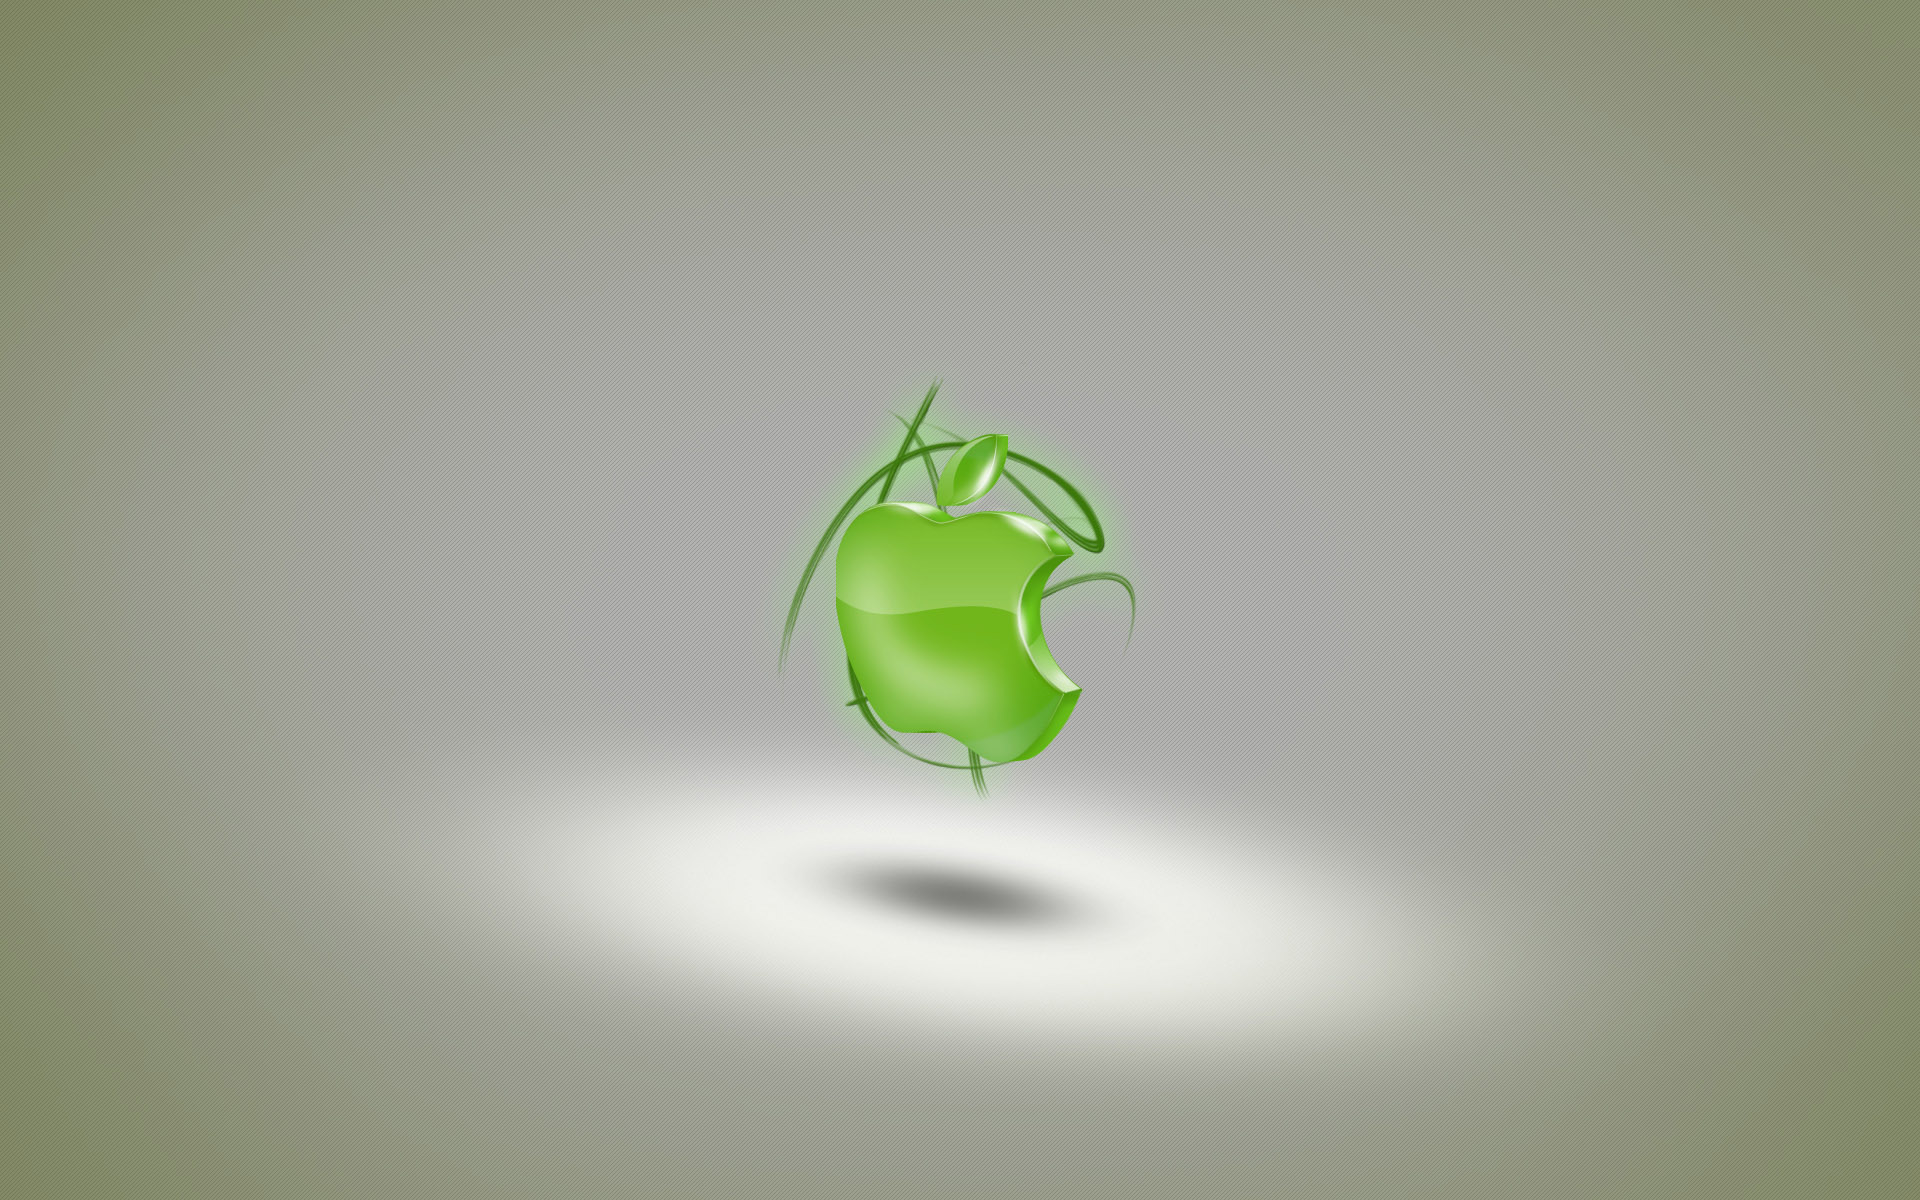 Green apples clipart images amp pictures becuo - Apple Mac Wallpapers